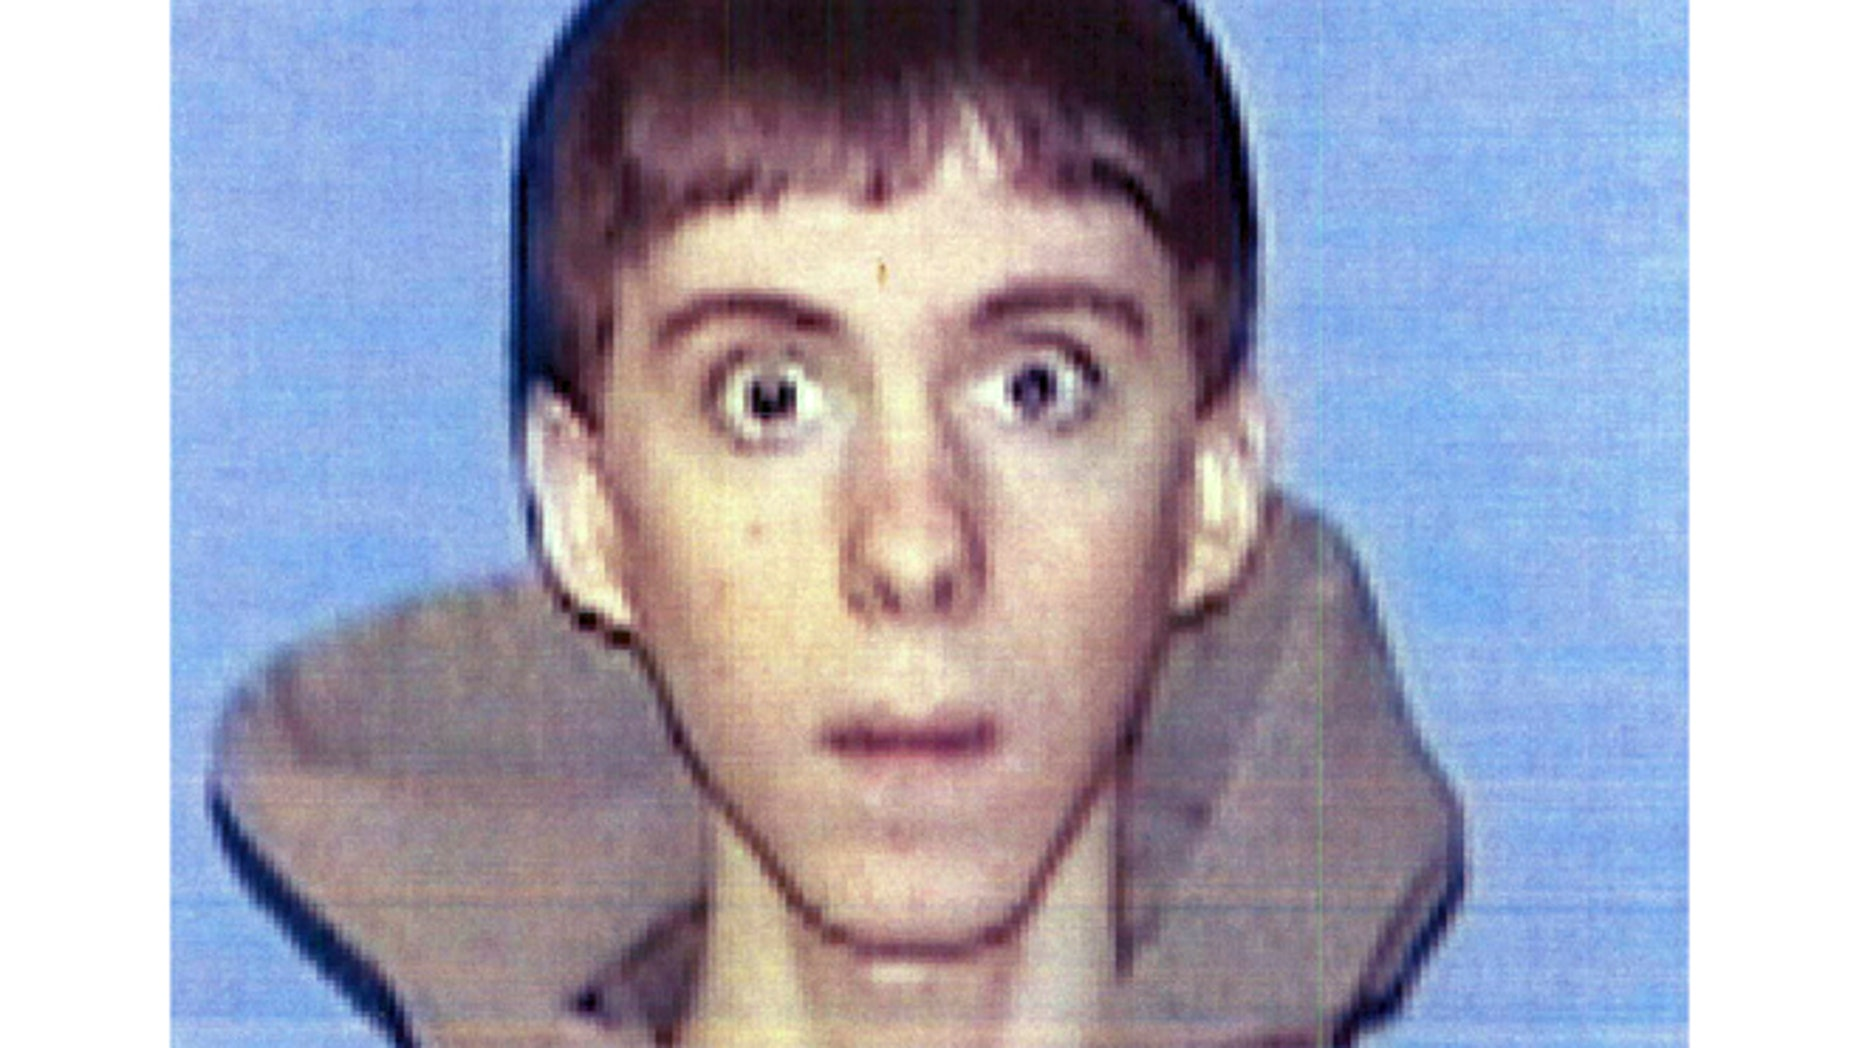 This undated identification photo released Wednesday, April 3, 2013 by Western Connecticut State University in Danbury, Conn., shows former student Adam Lanza, who authorities said opened fire inside the Sandy Hook Elementary School in Newtown, Conn., on Friday, Dec. 14, 2012, killing 26 students and educators.